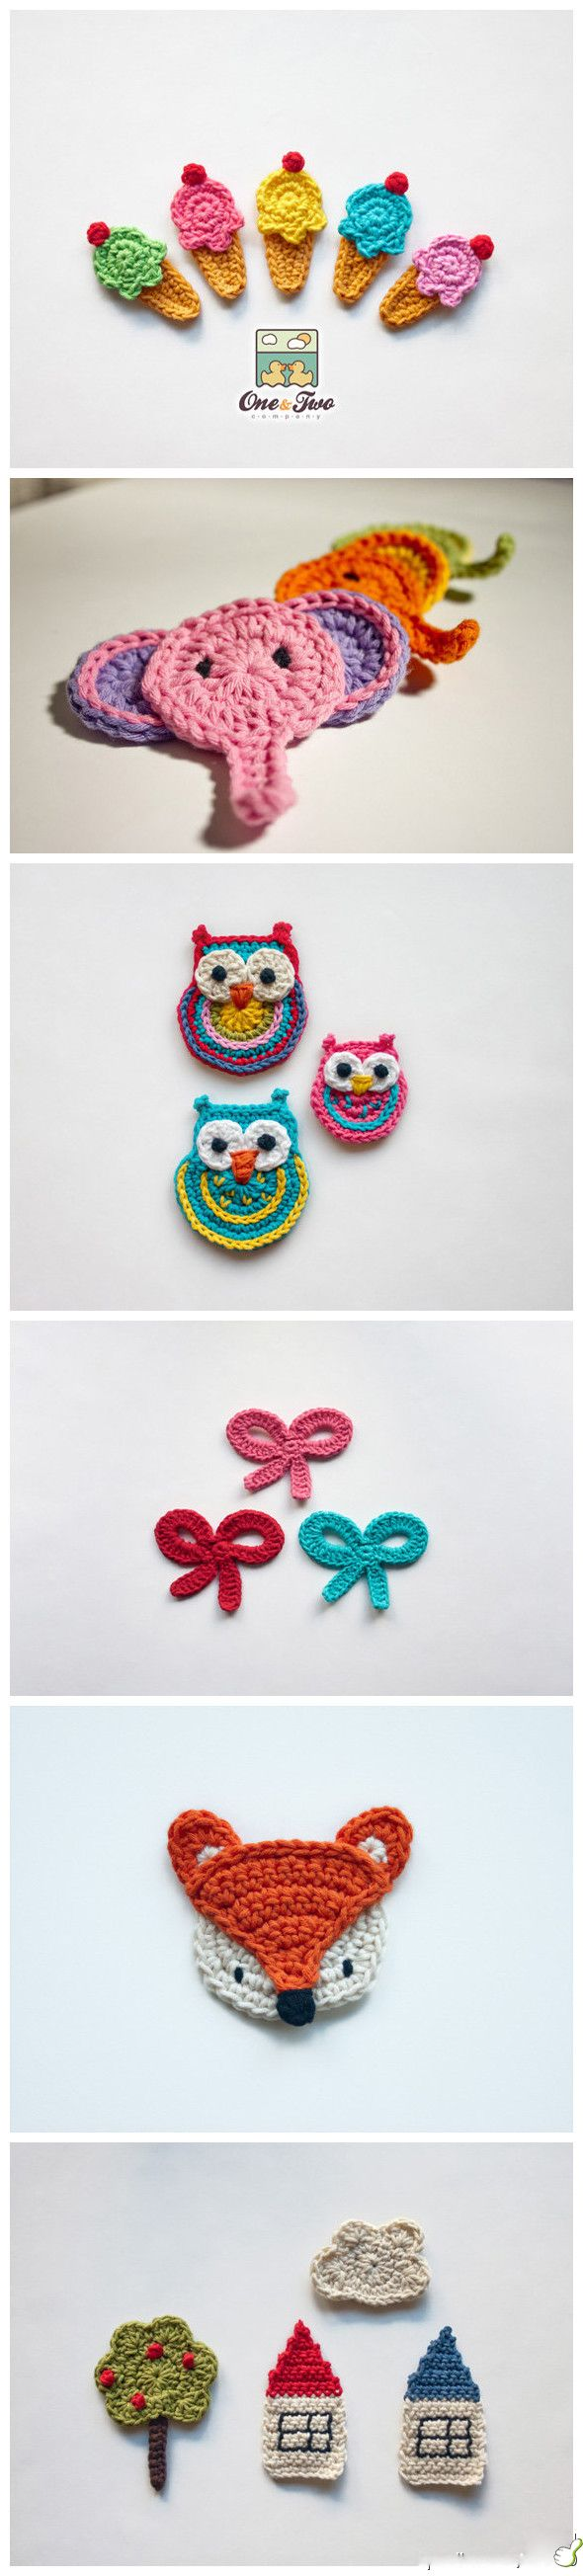 Flat crochet so wonderful to add to clothing for kids.